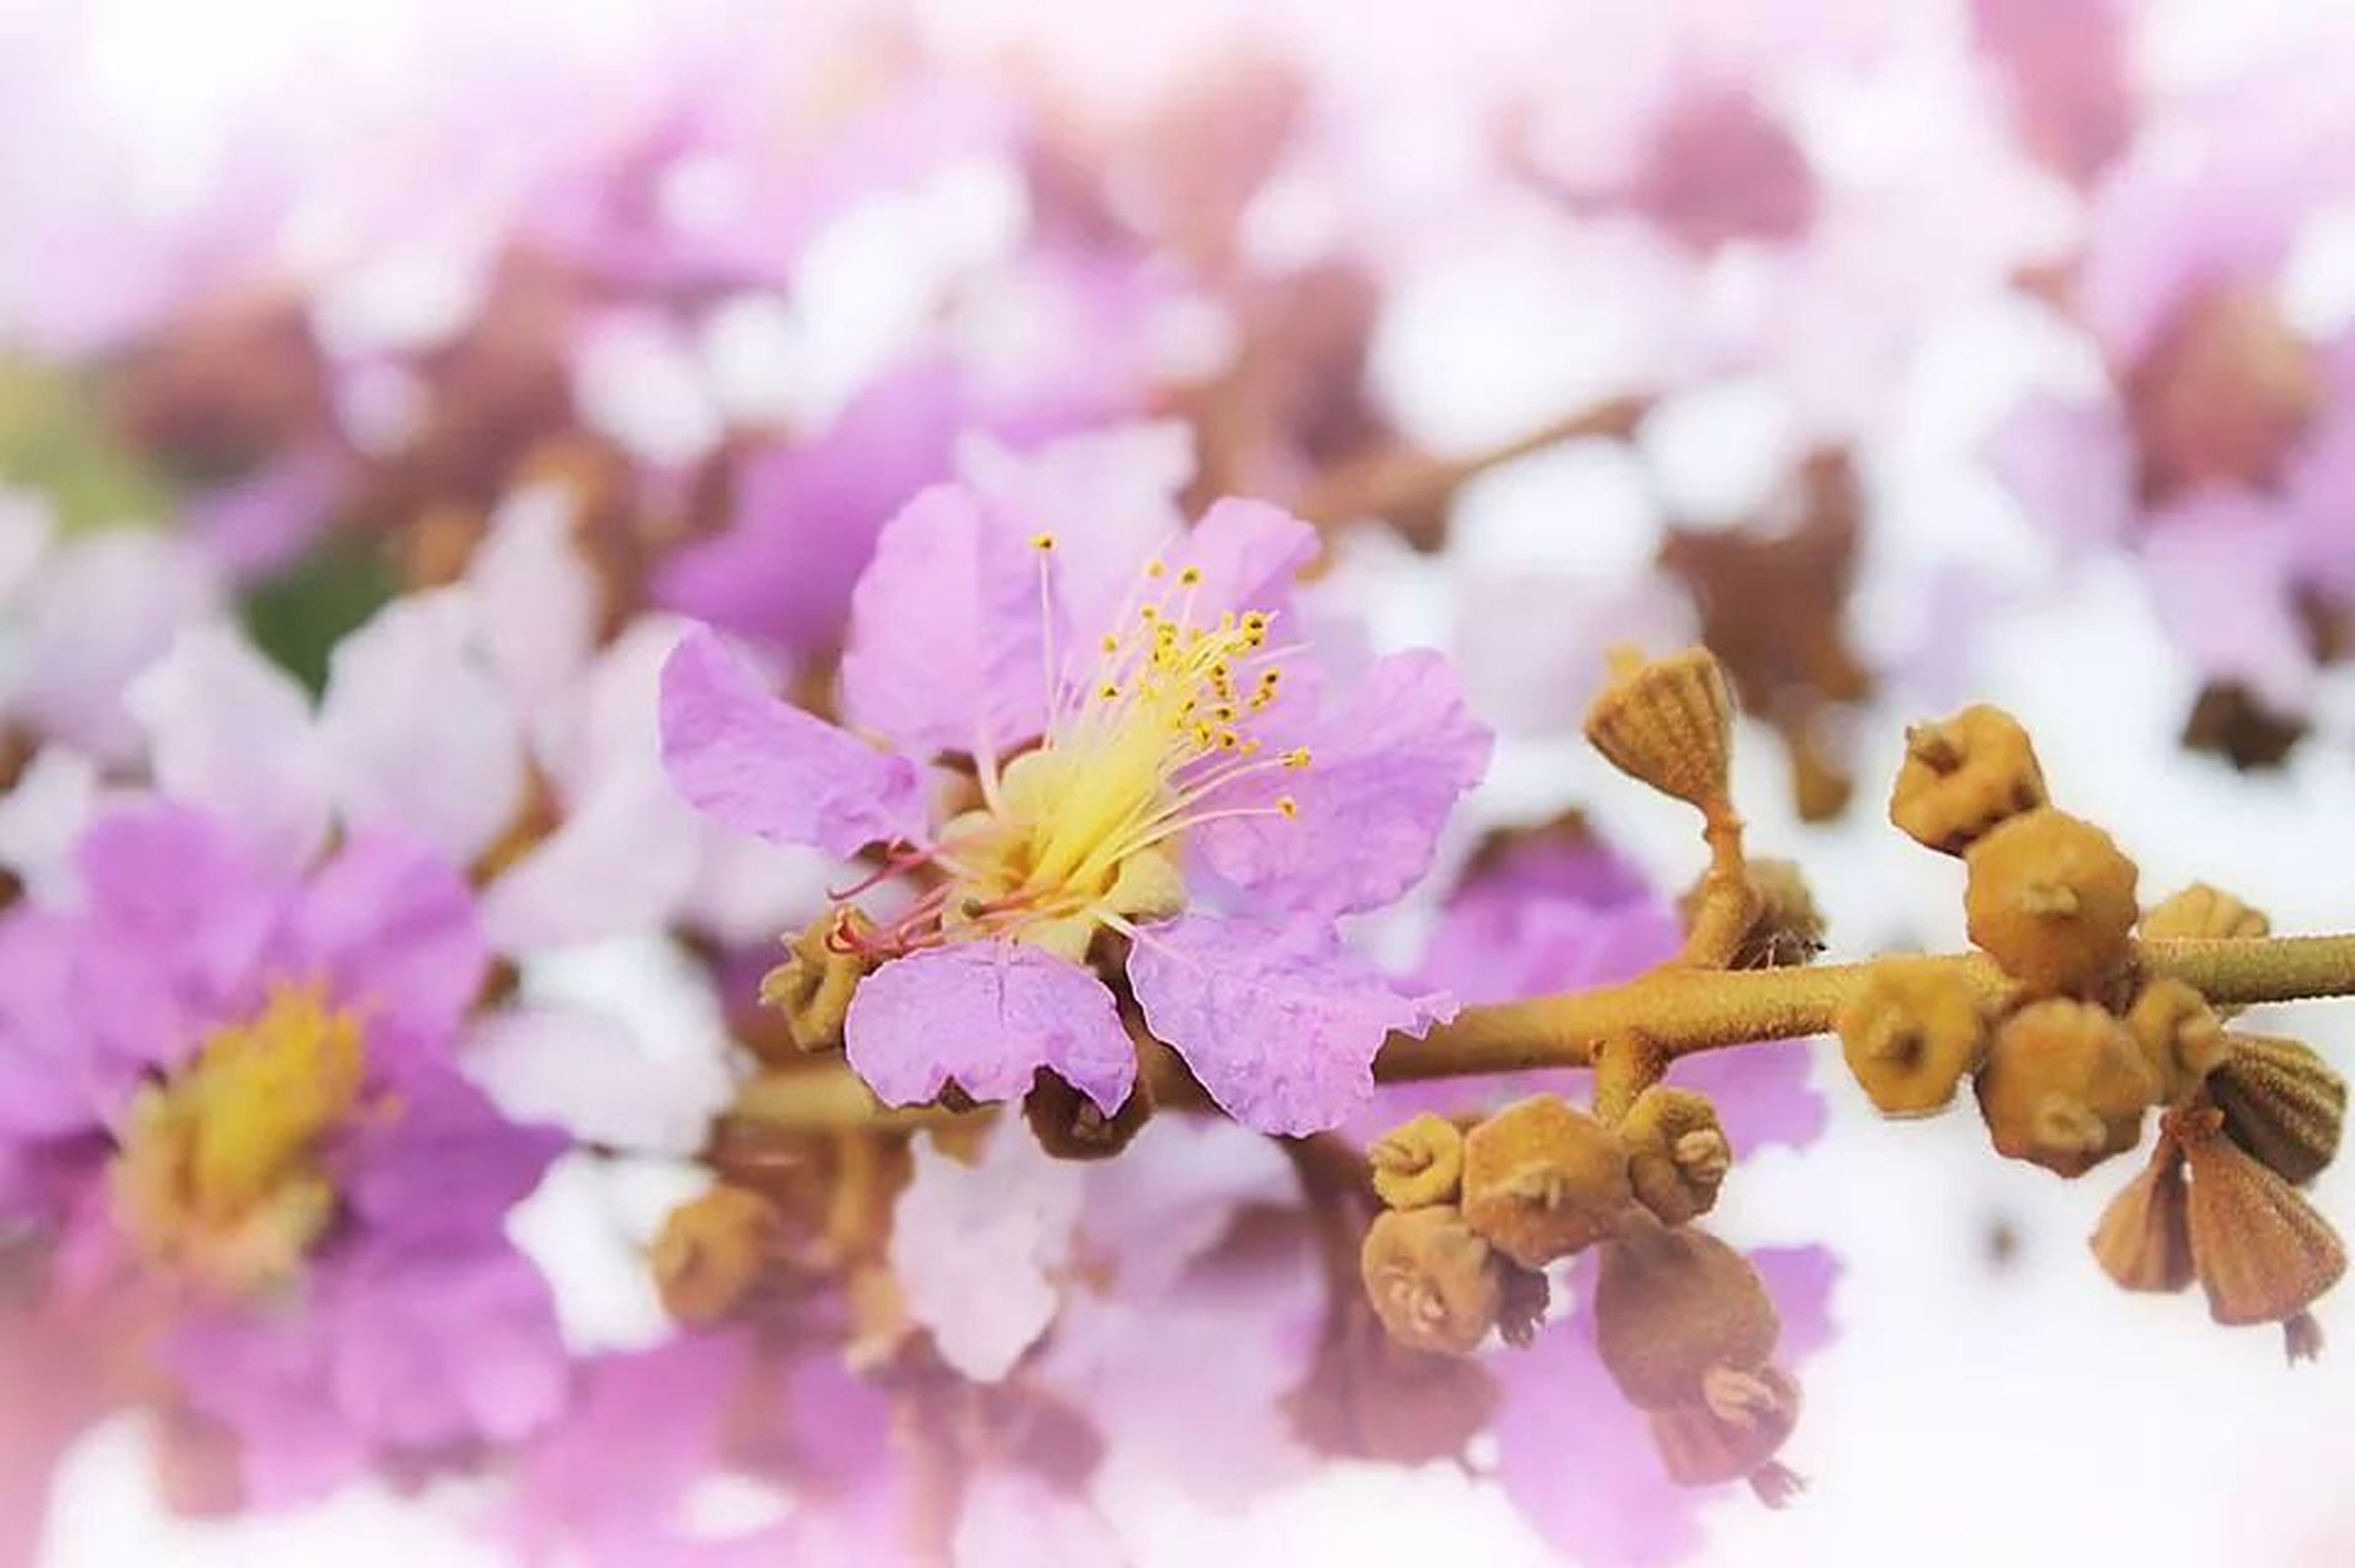 flower, freshness, petal, fragility, flower head, beauty in nature, growth, close-up, nature, pink color, pollen, blooming, focus on foreground, selective focus, stamen, blossom, in bloom, springtime, purple, day